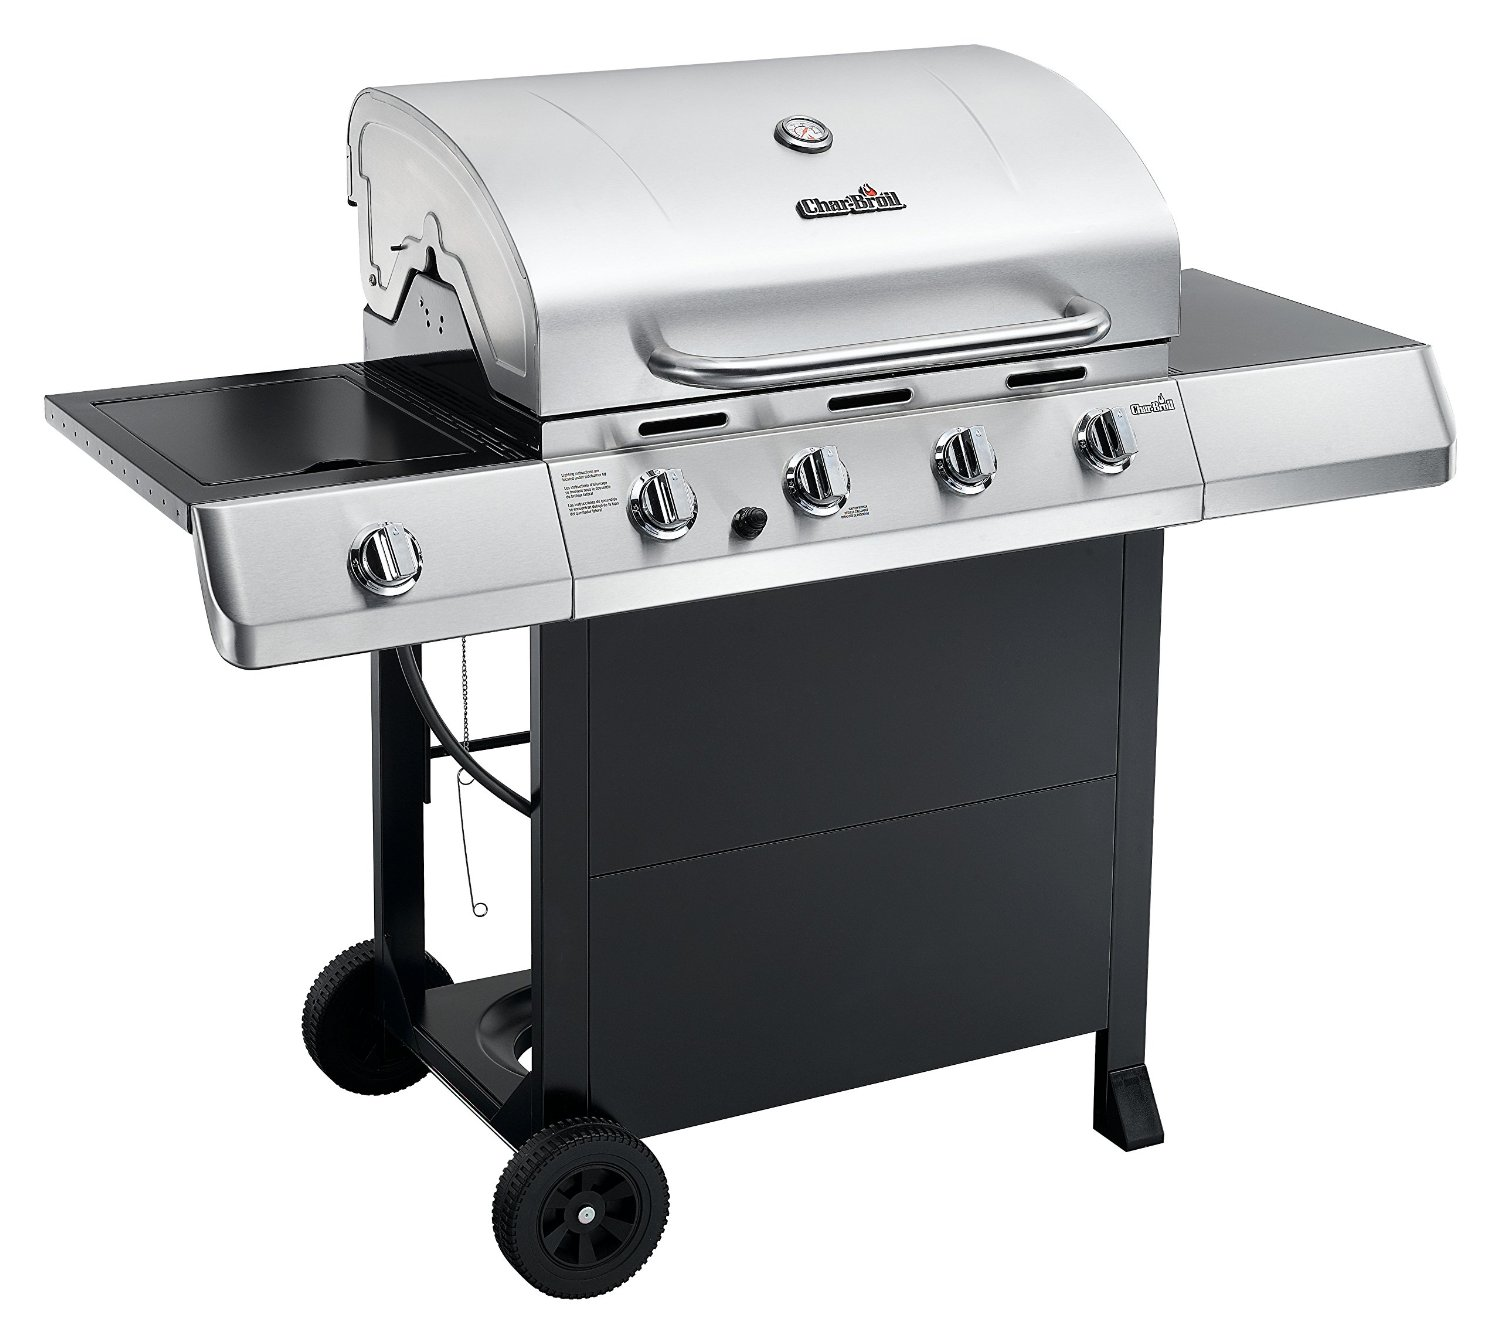 Top 10 Best Gas Grills In 2020 Review